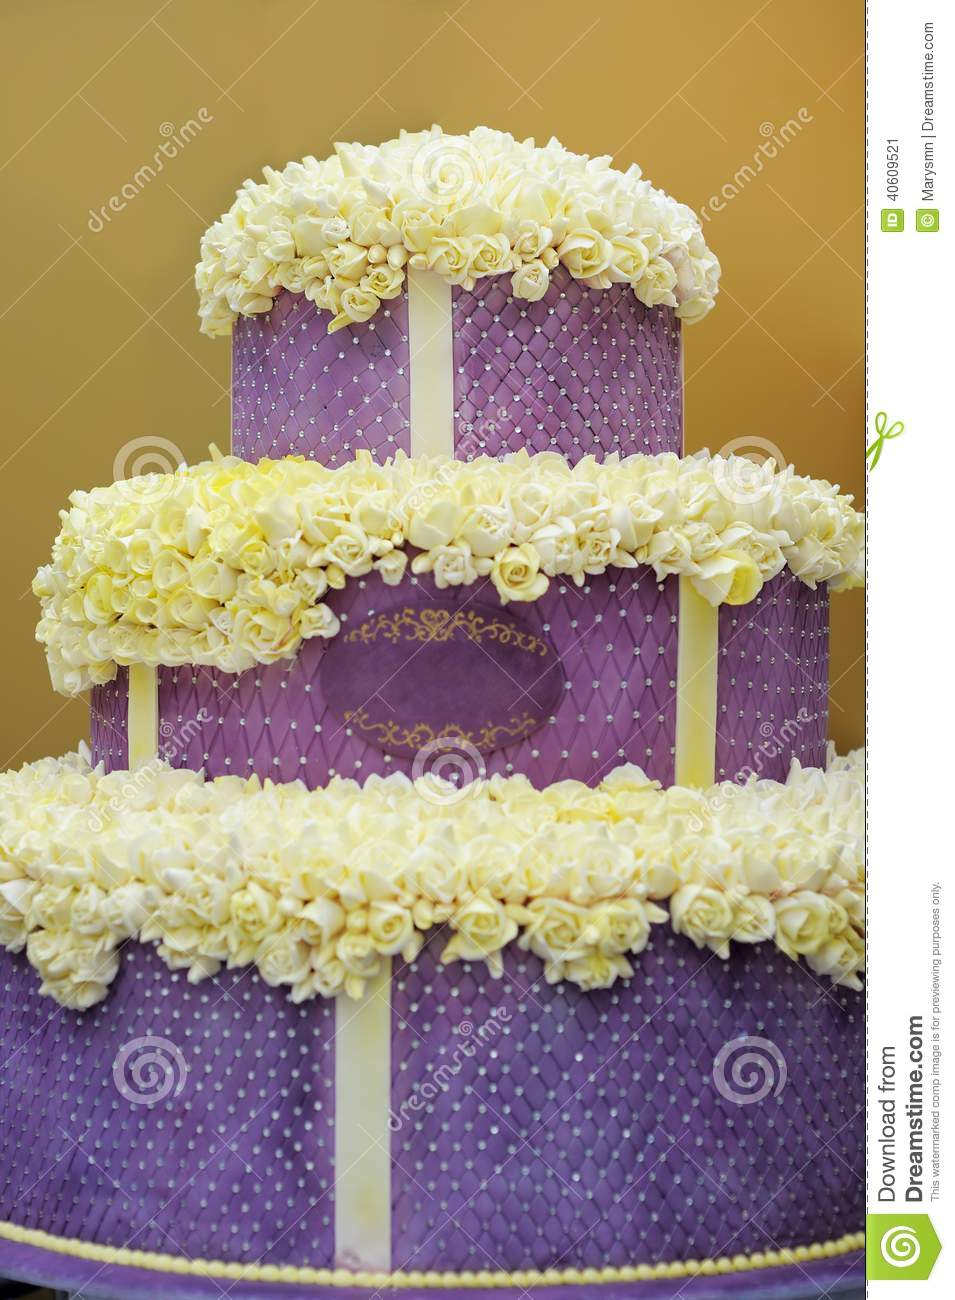 Delicious Big Violet Wedding Cake Stock Photo Image